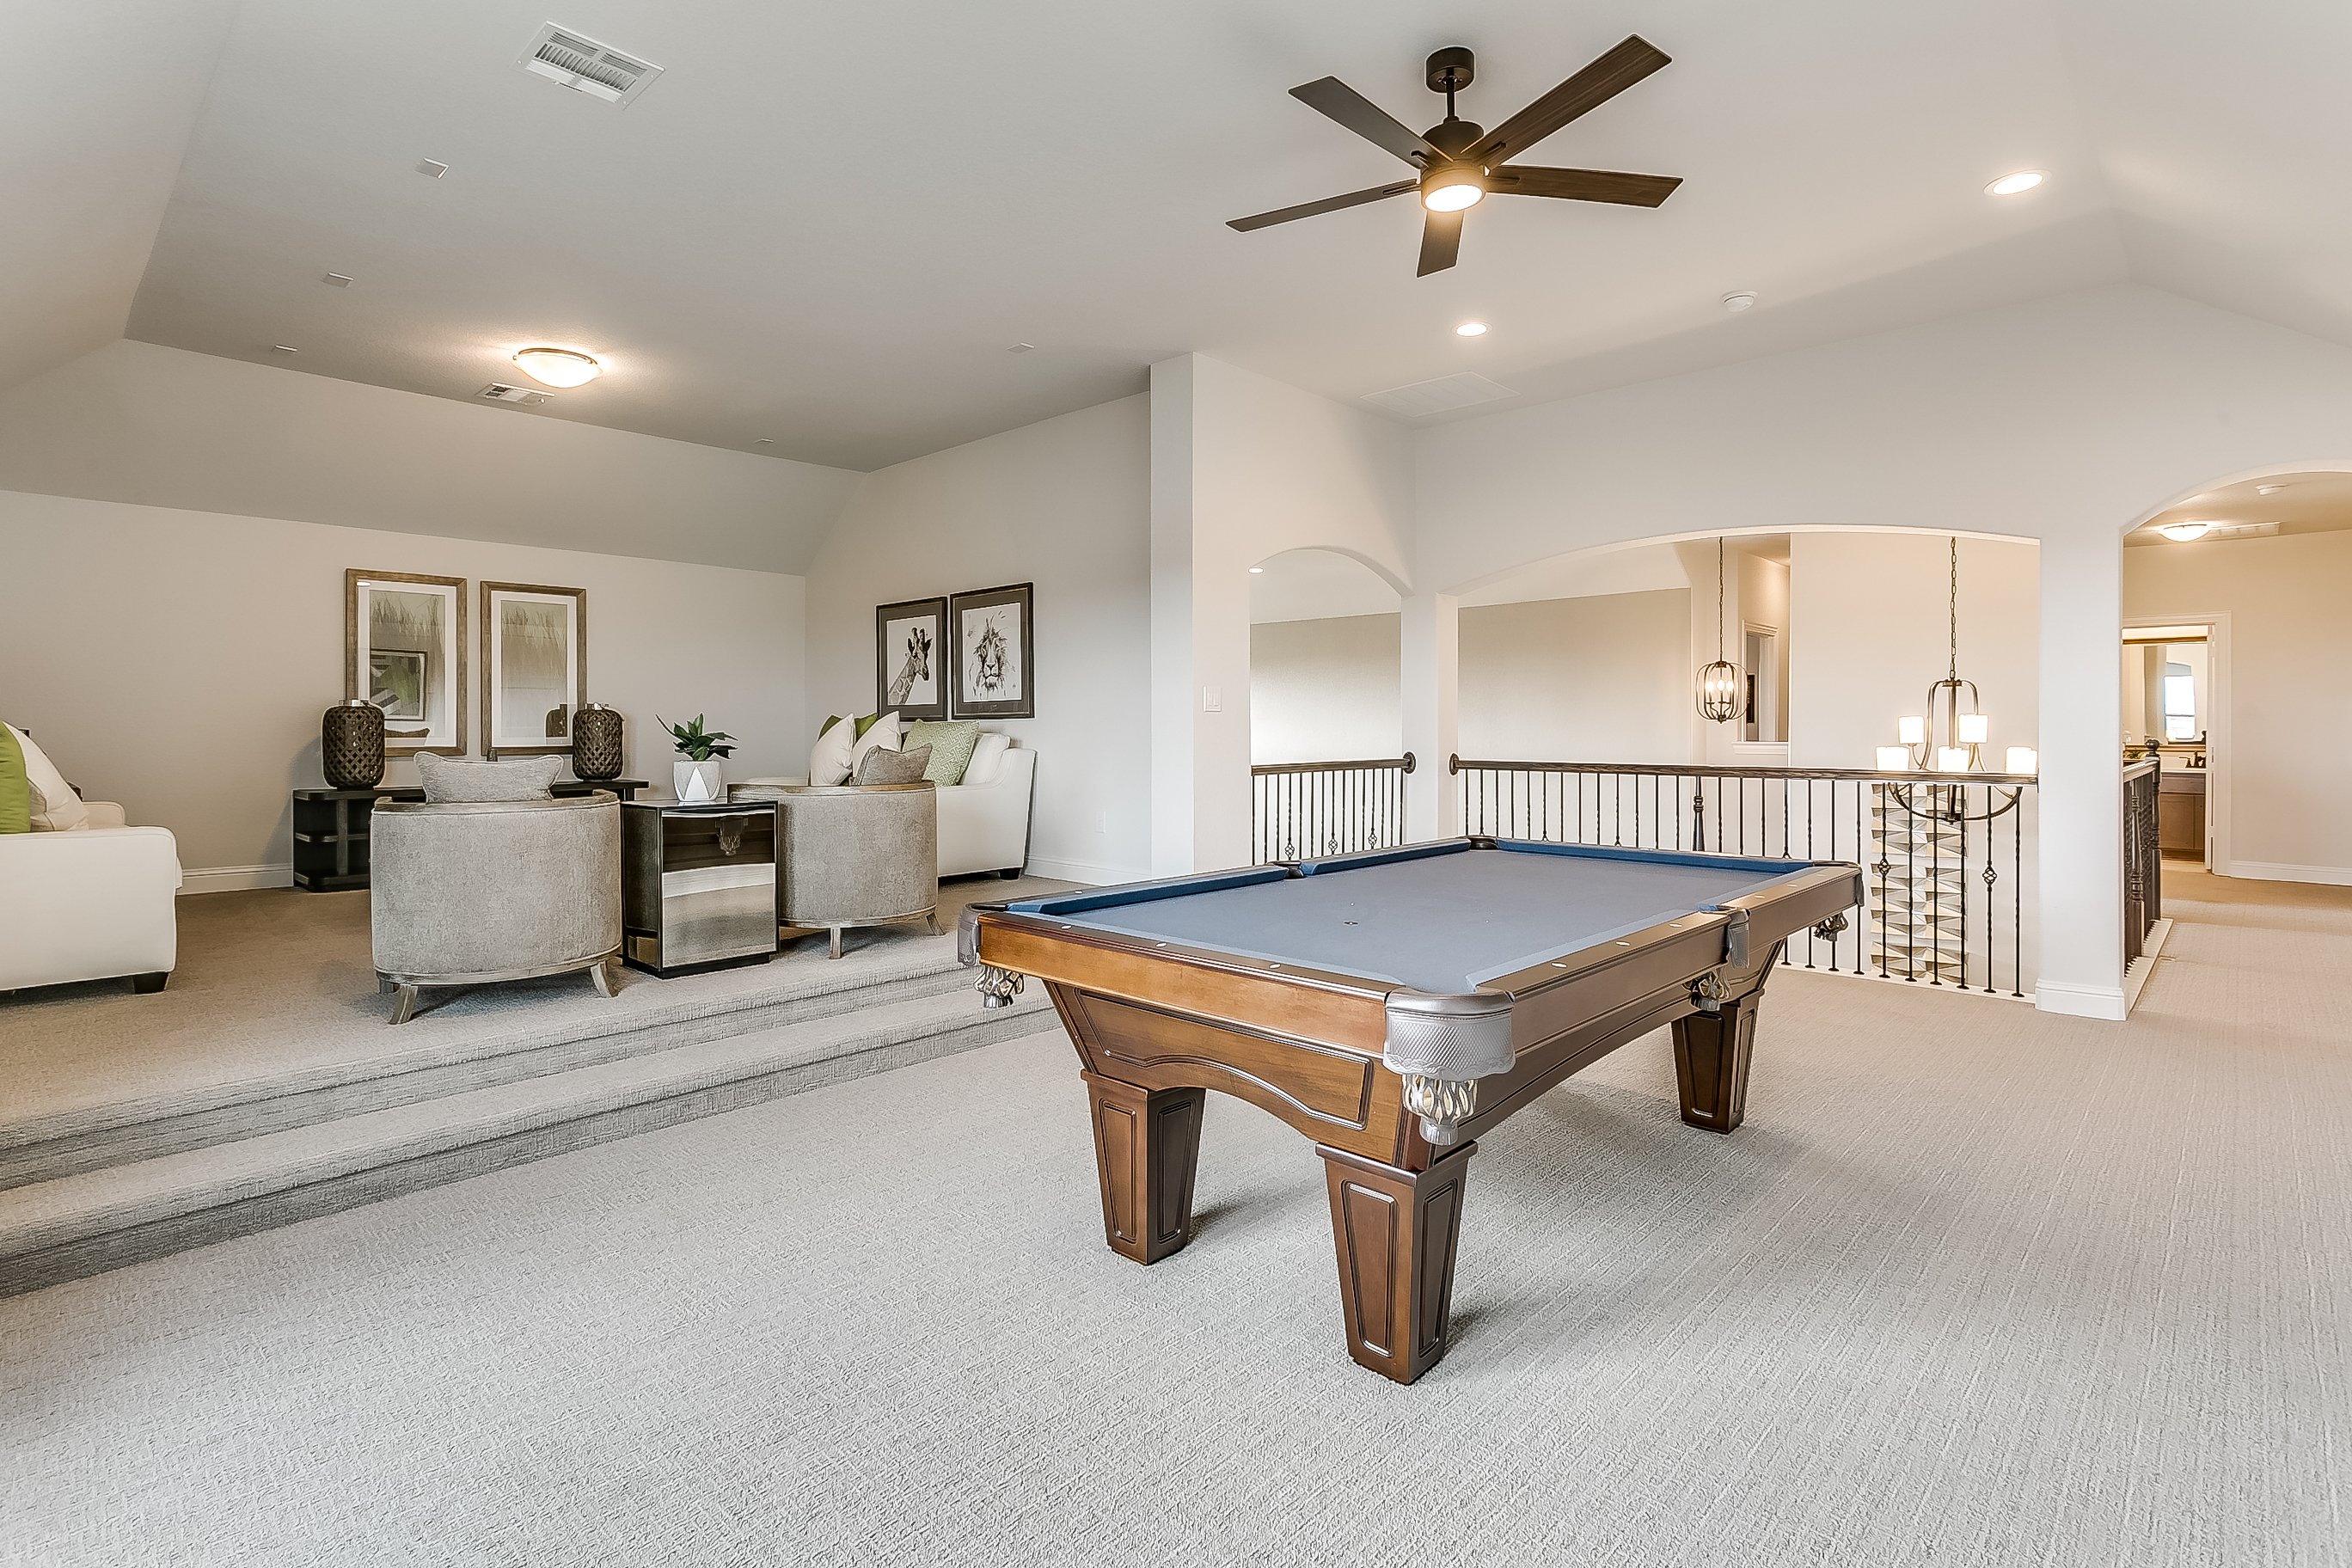 Estates at North Grove, Waxahachie, new homes for sale, waxahachie home builder, ellis county, model home, 3d gallery, 3d home tour, model home photos, game room, media room